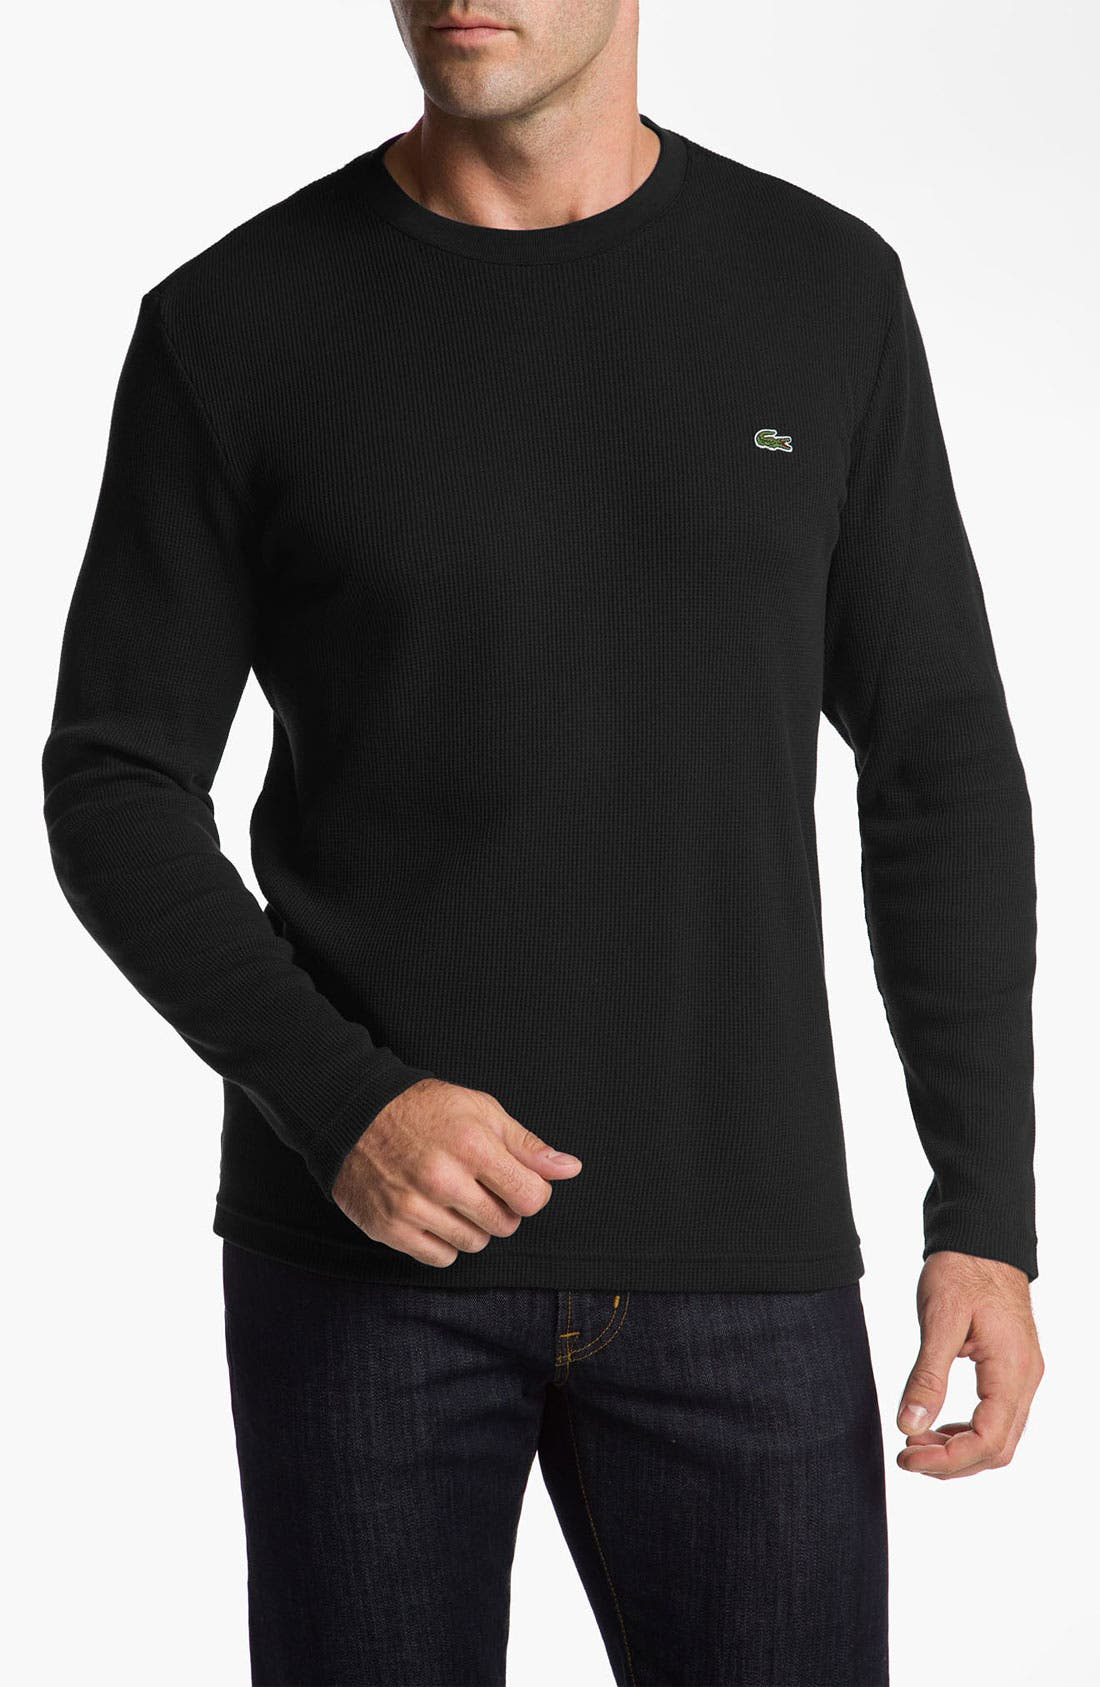 Alternate Image 1 Selected - Lacoste Crewneck Thermal Top